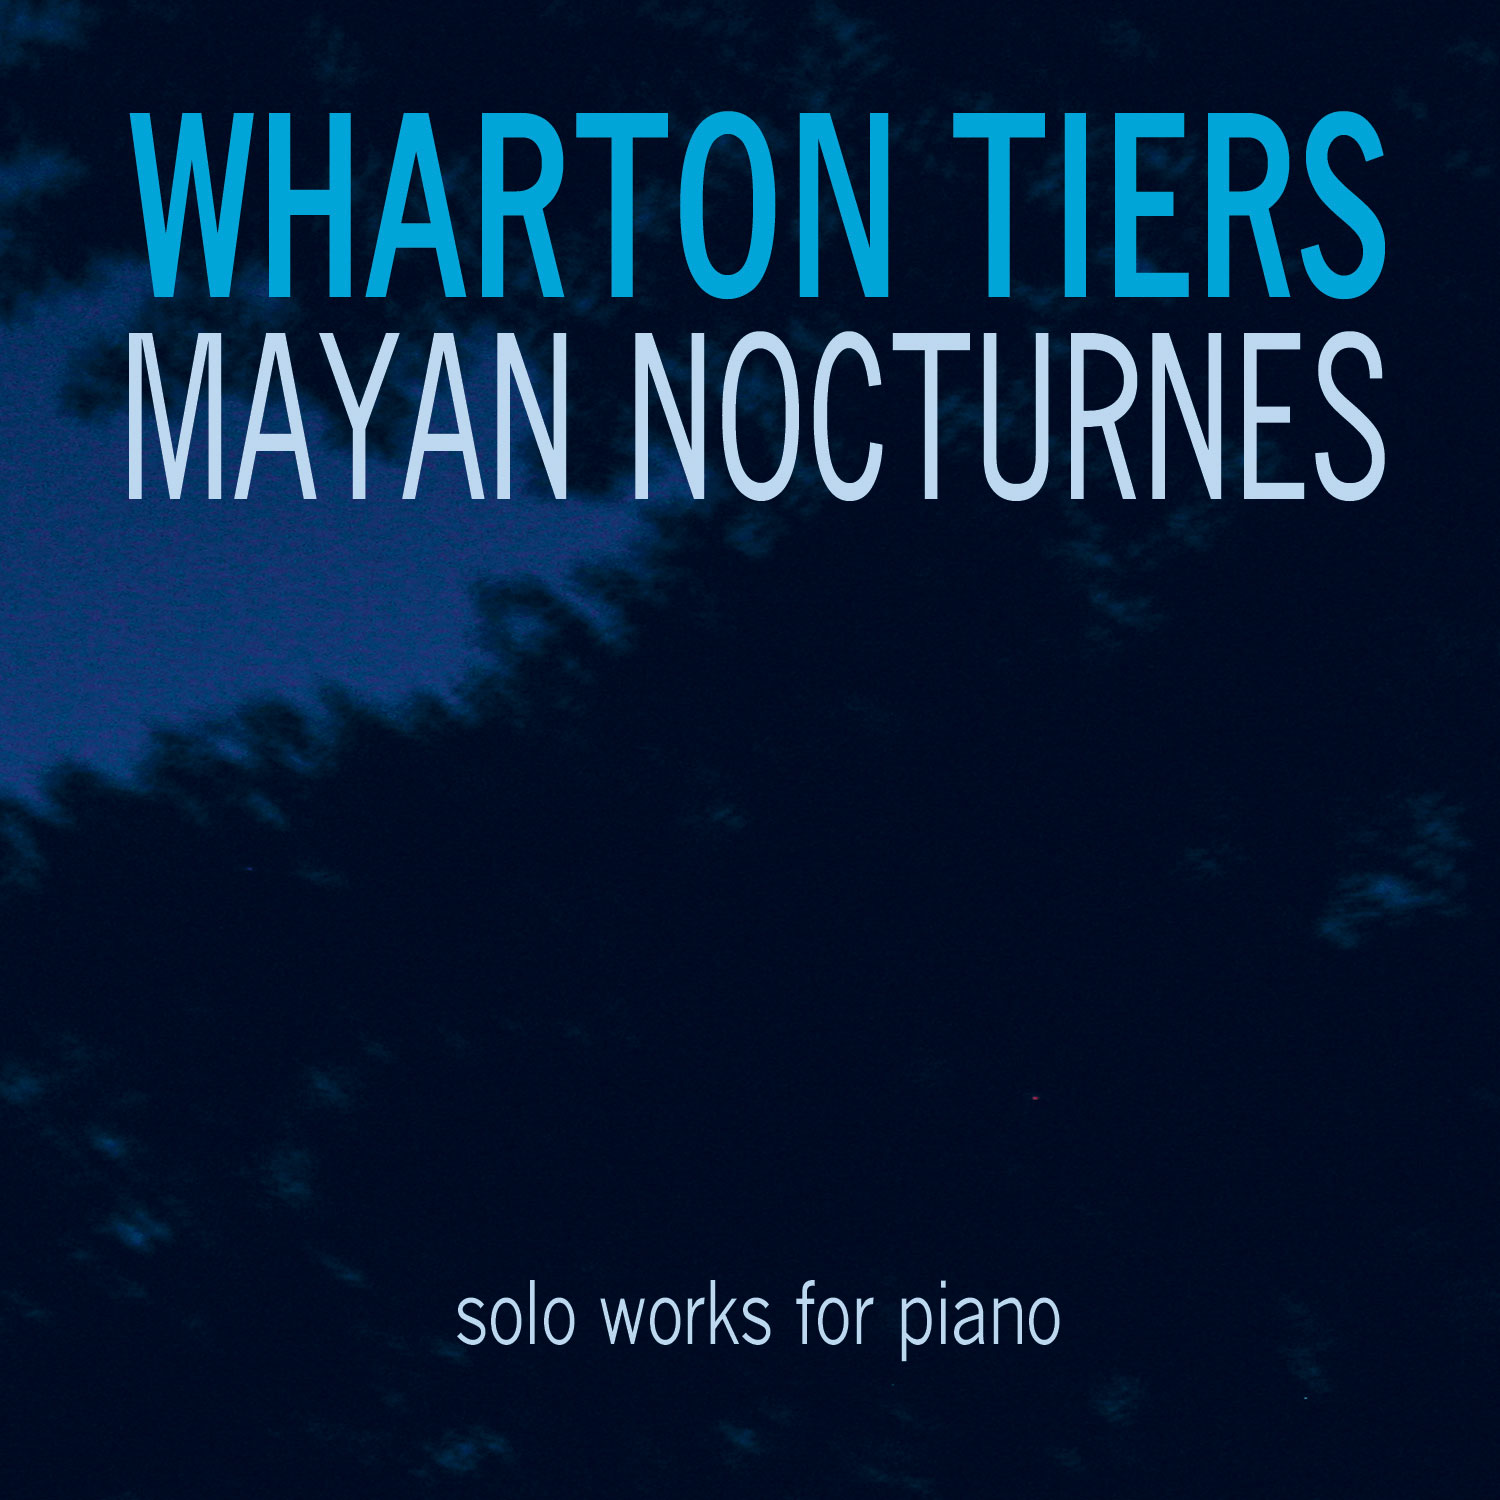 Wharton Tiers, Mayan Nocturnes, solo works for piano